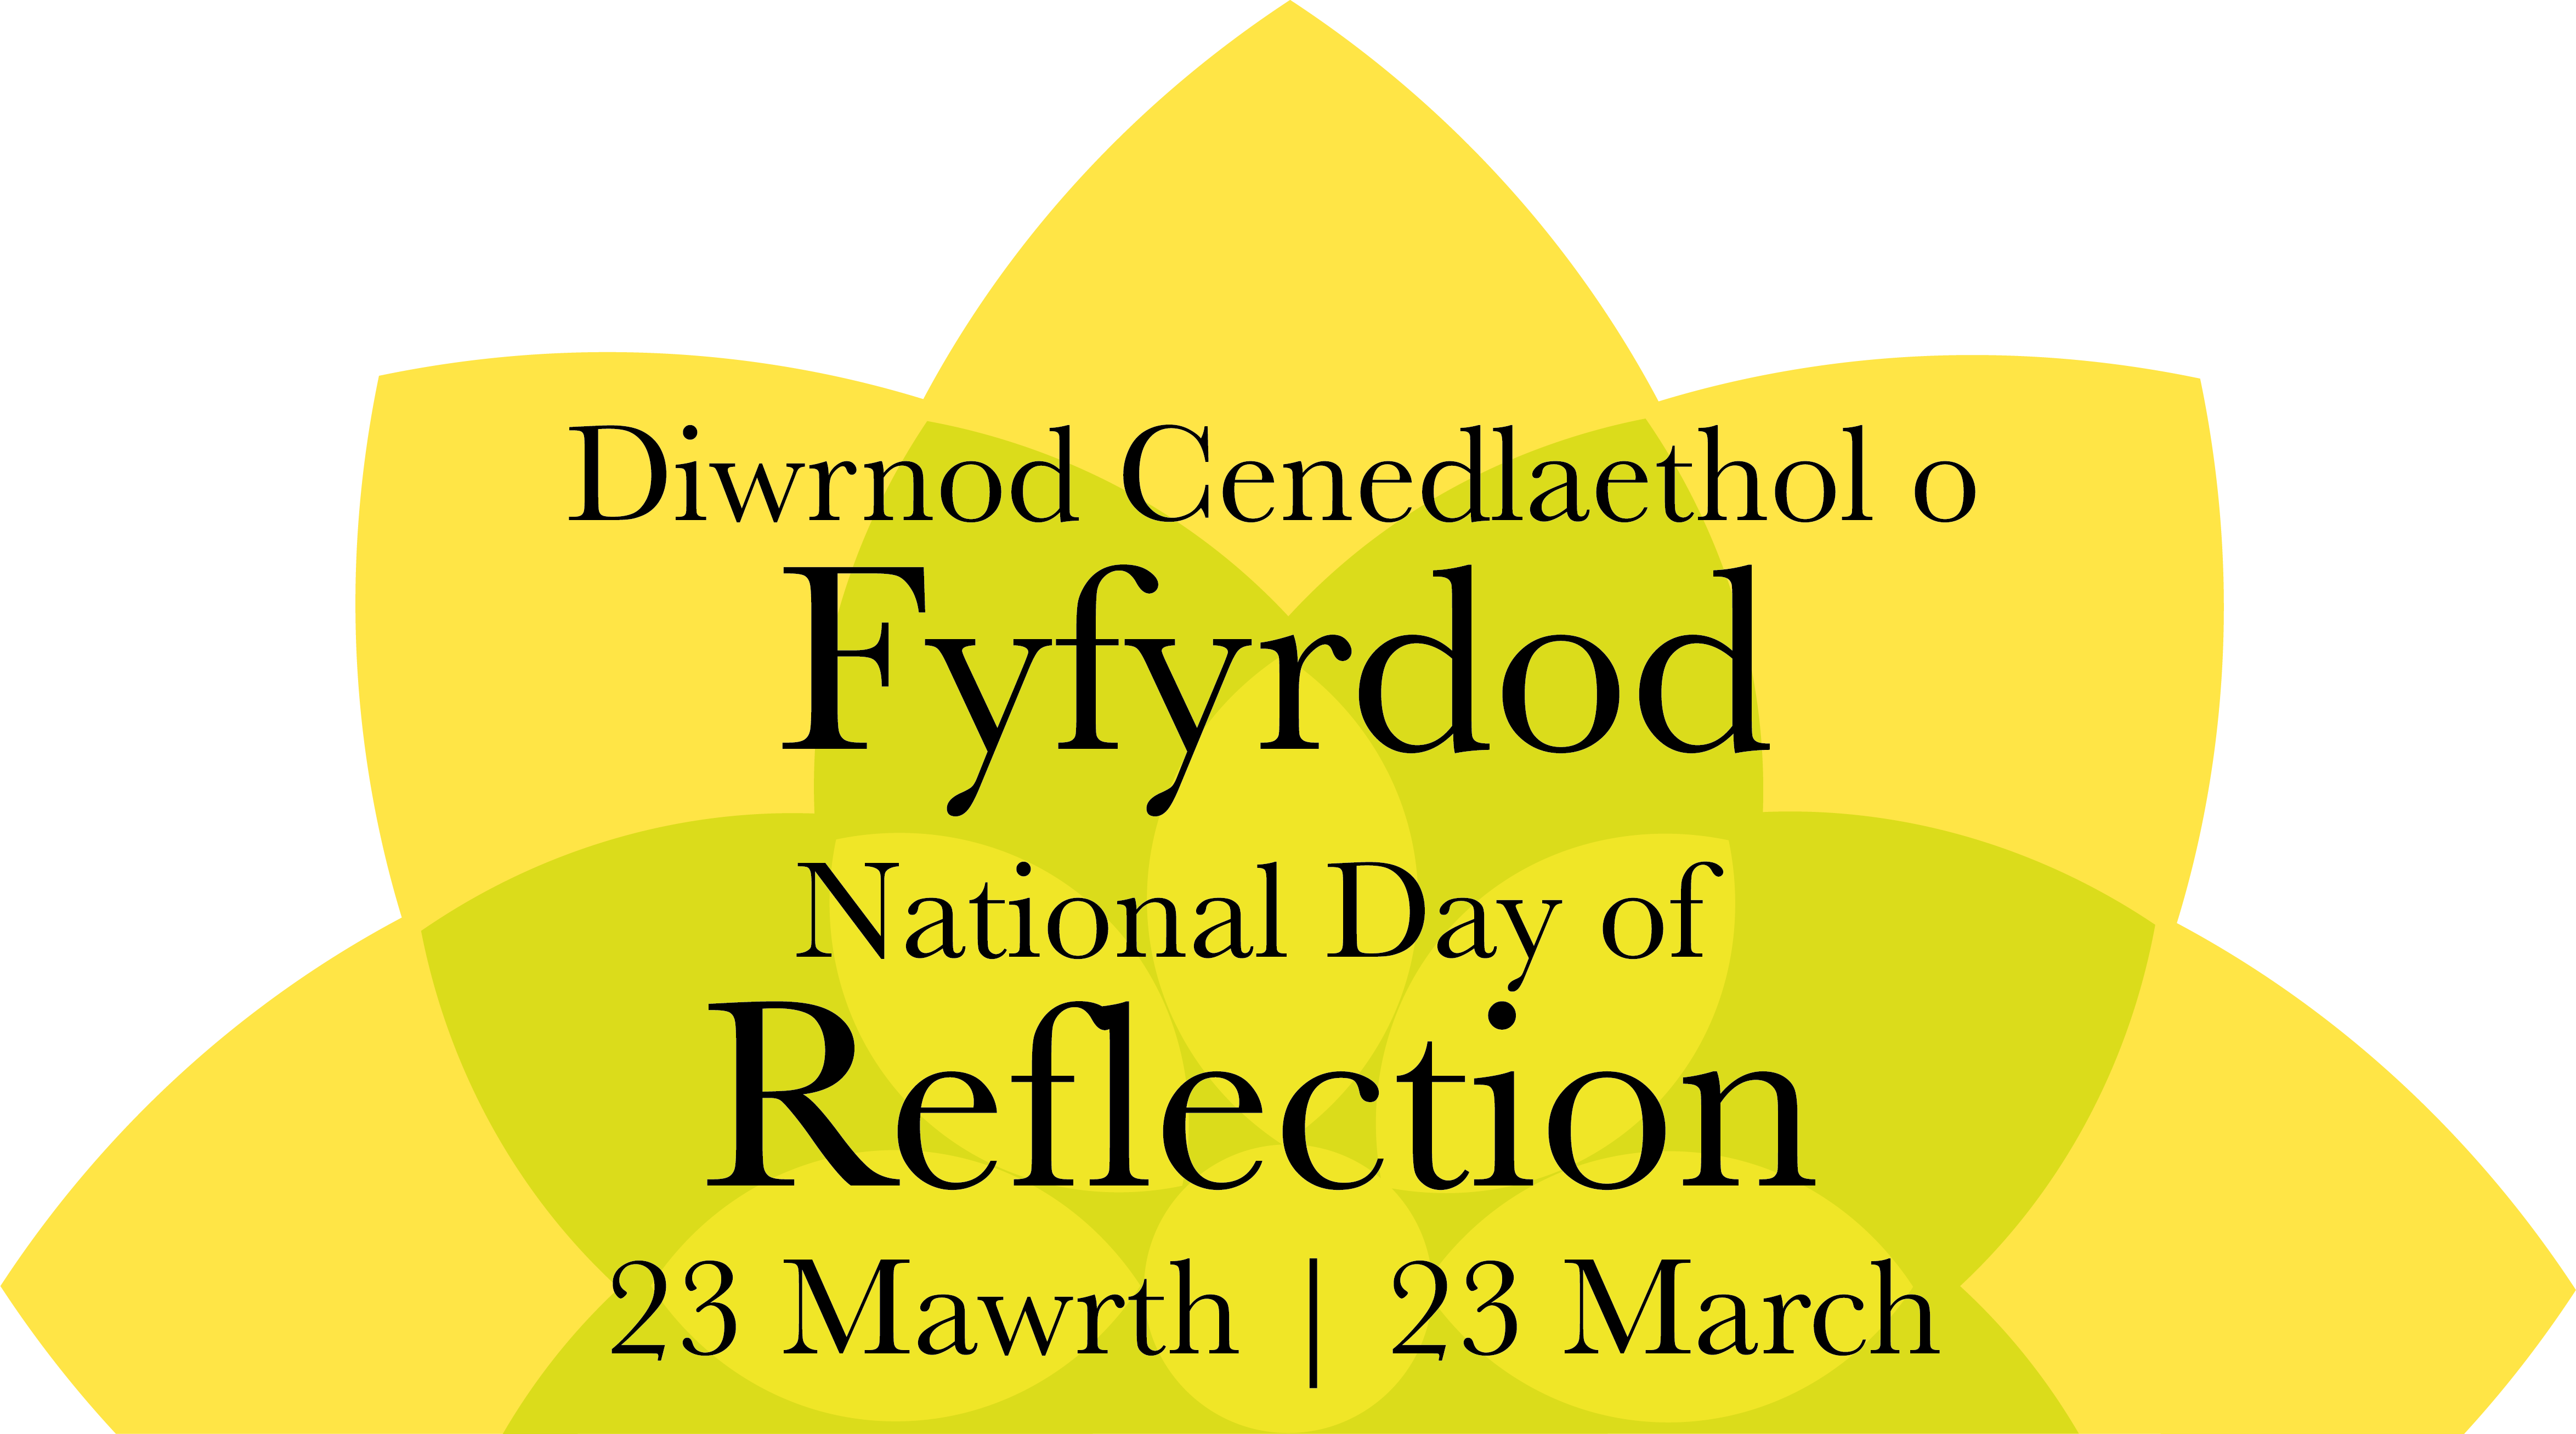 National Day of Reflection - March 23rd